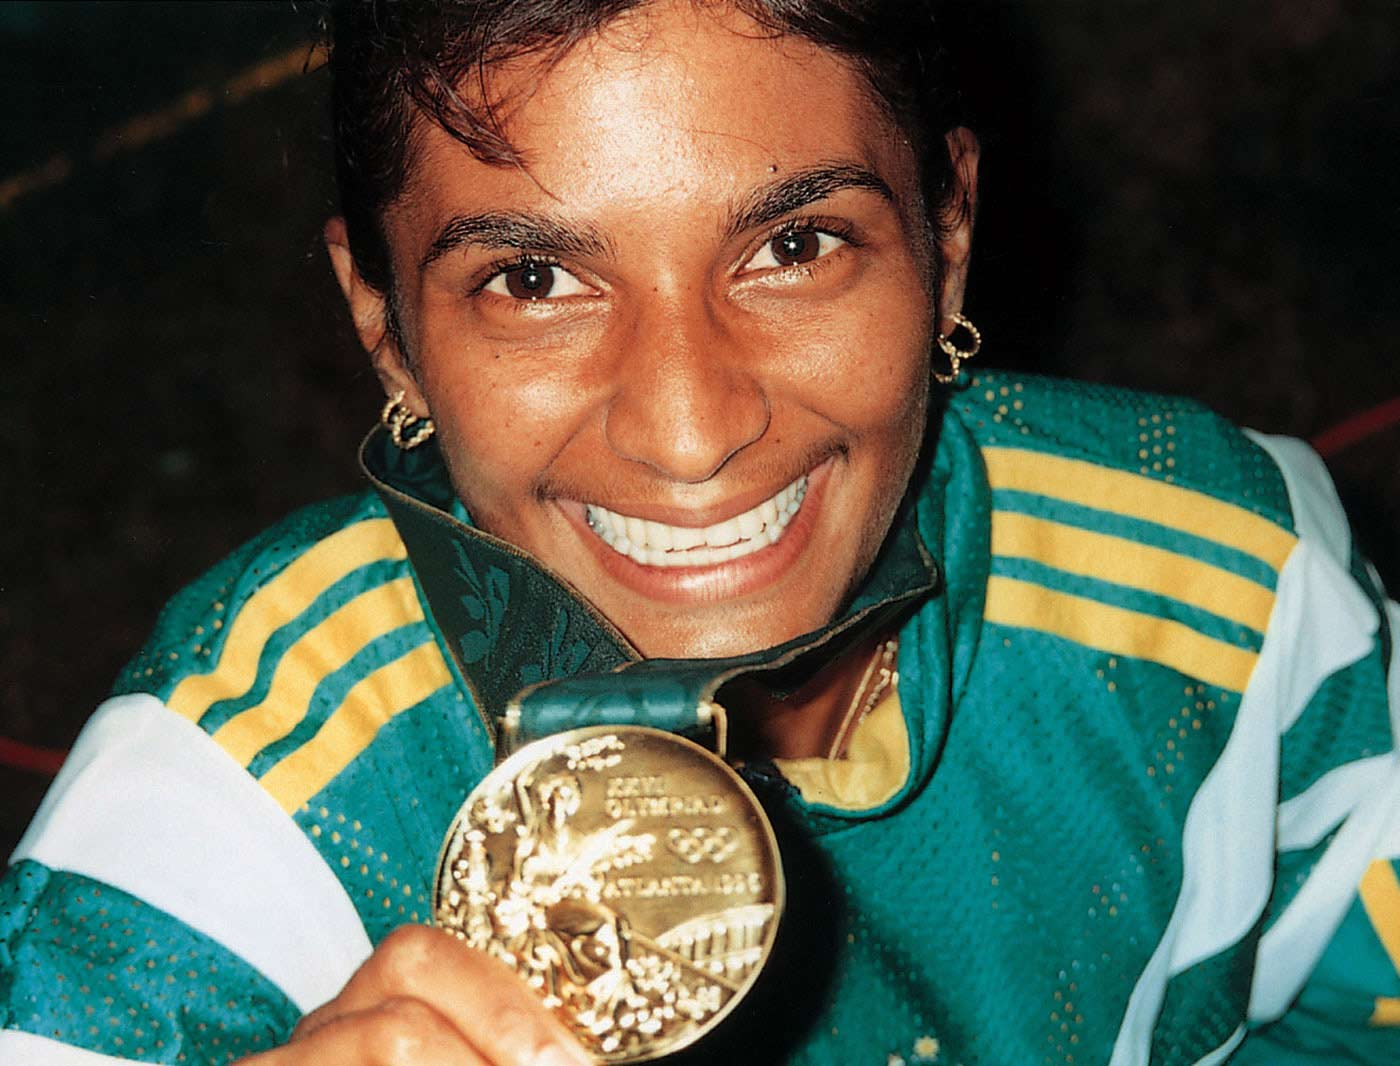 Nova Peris holding up her Olympic gold medal for Hockey.